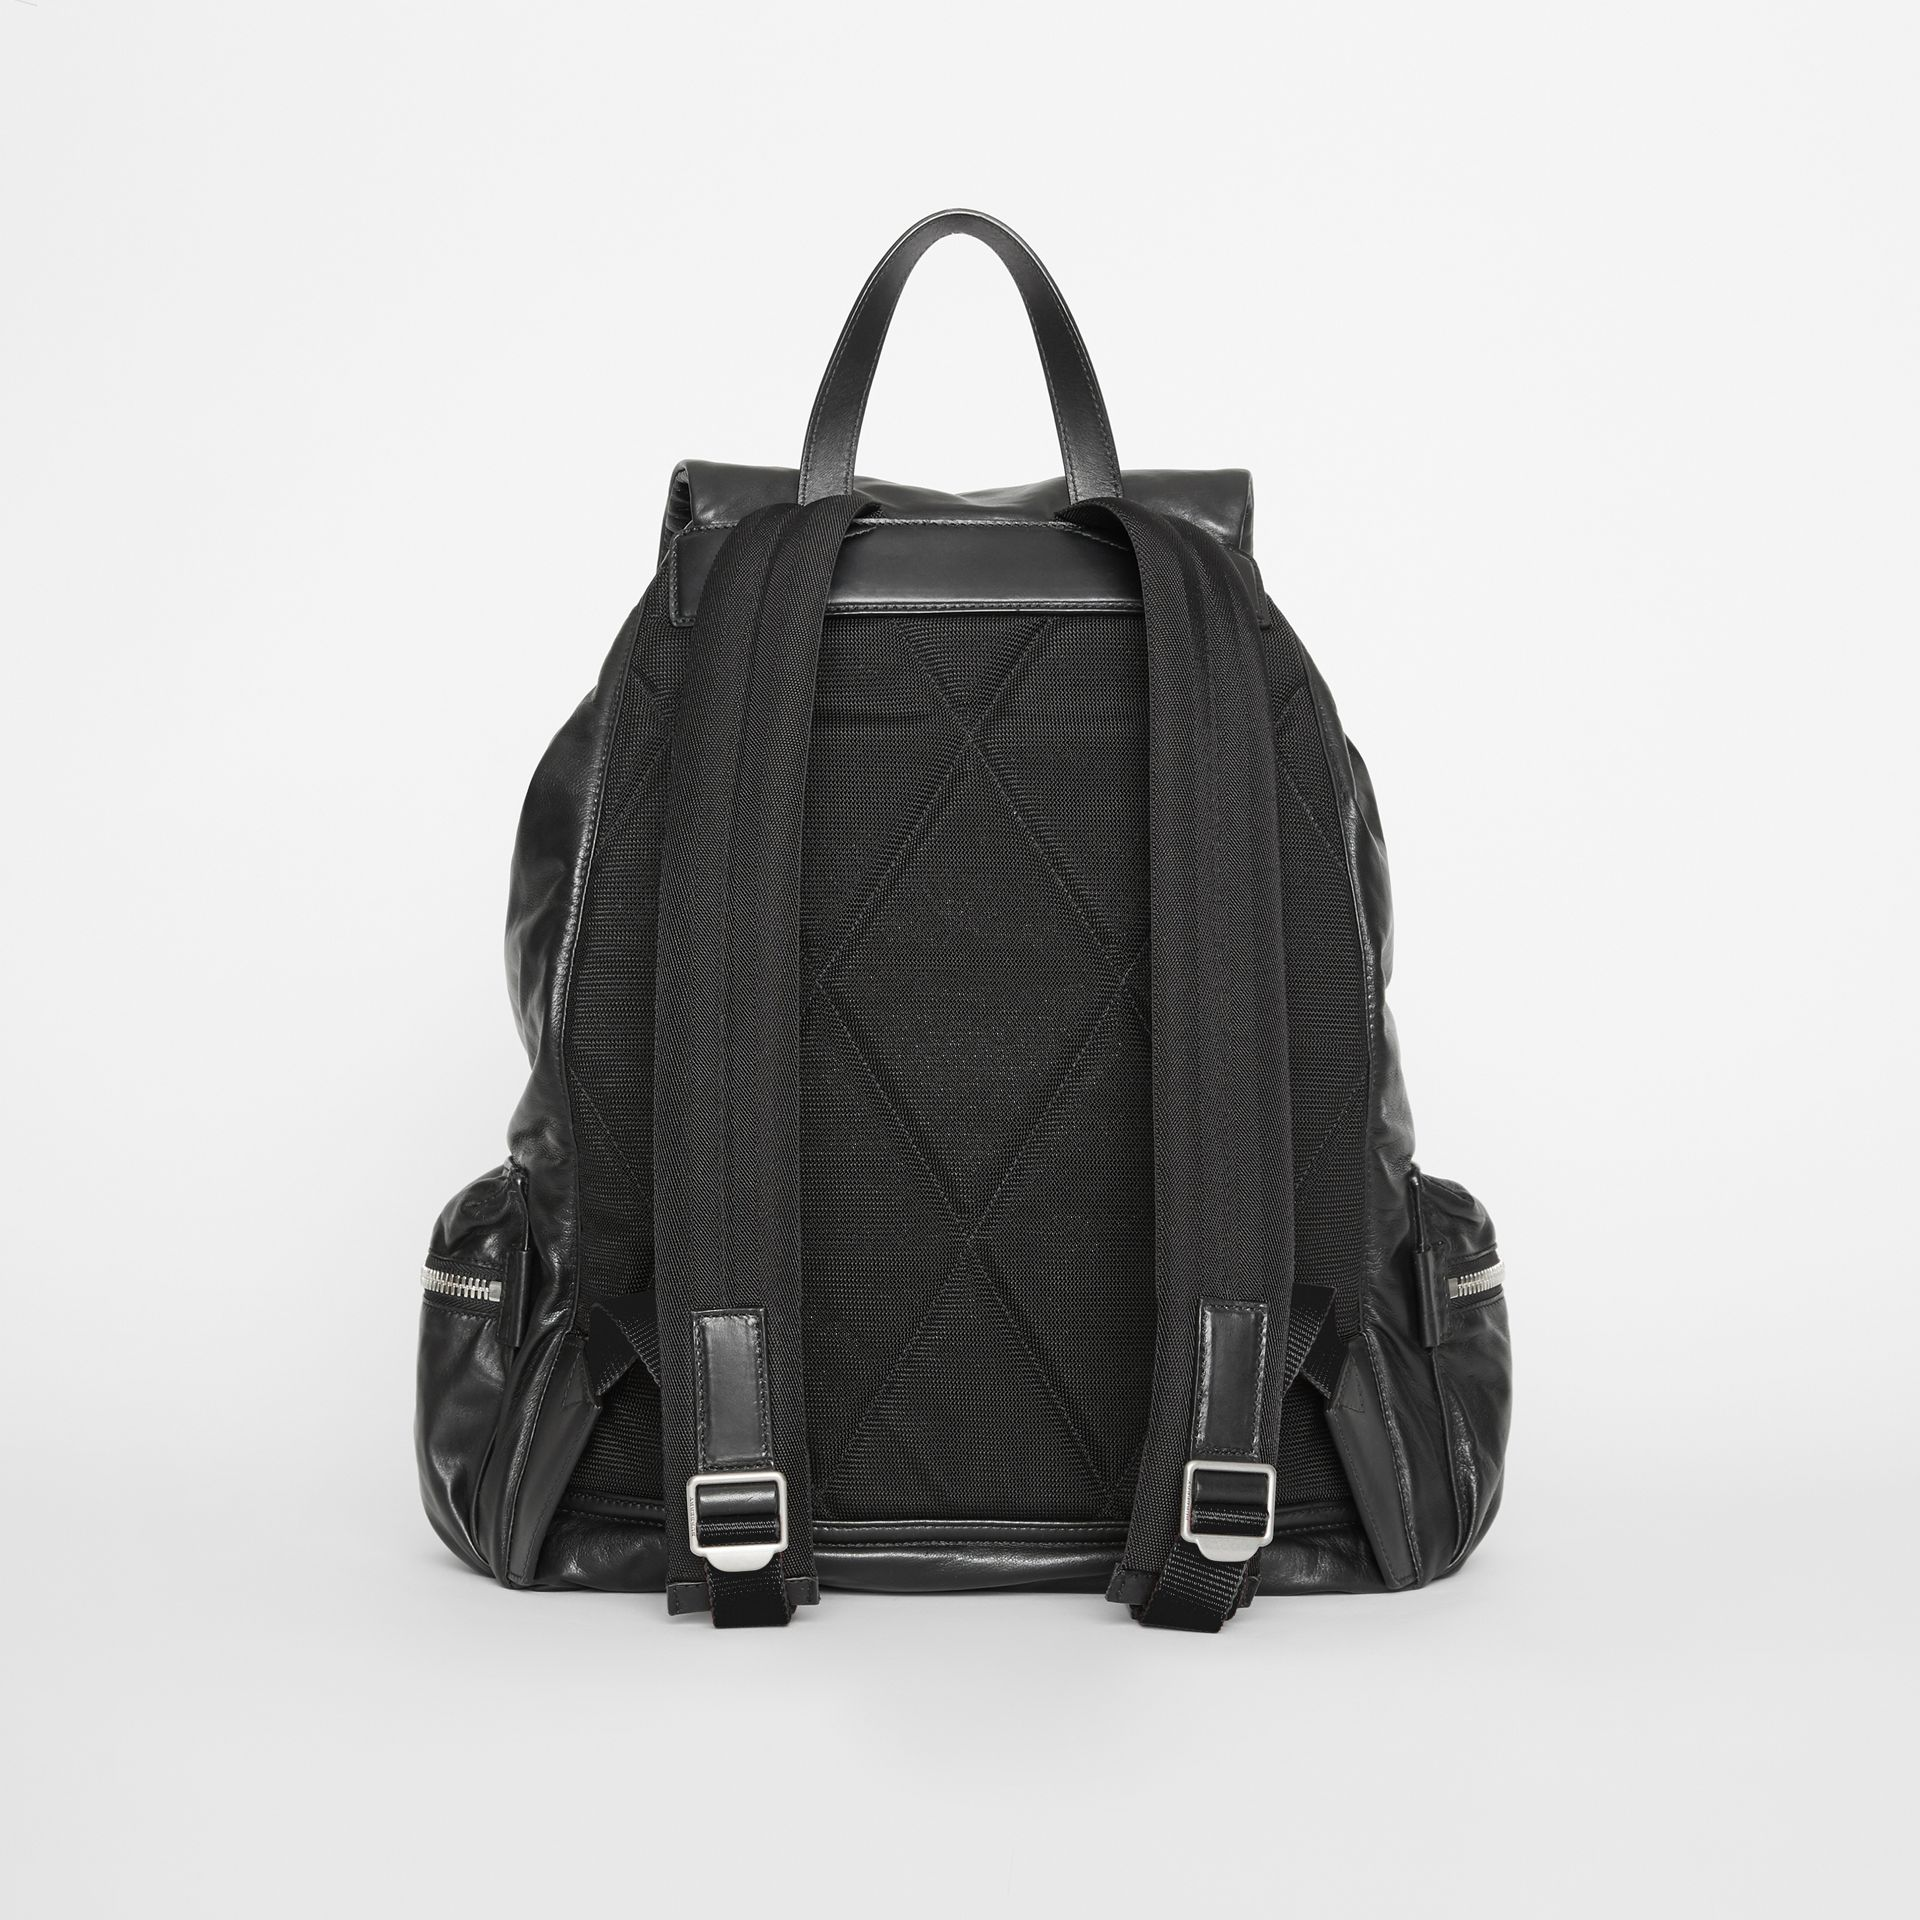 Sac The Rucksack extra-large en cuir nappa (Noir) - Homme | Burberry - photo de la galerie 7